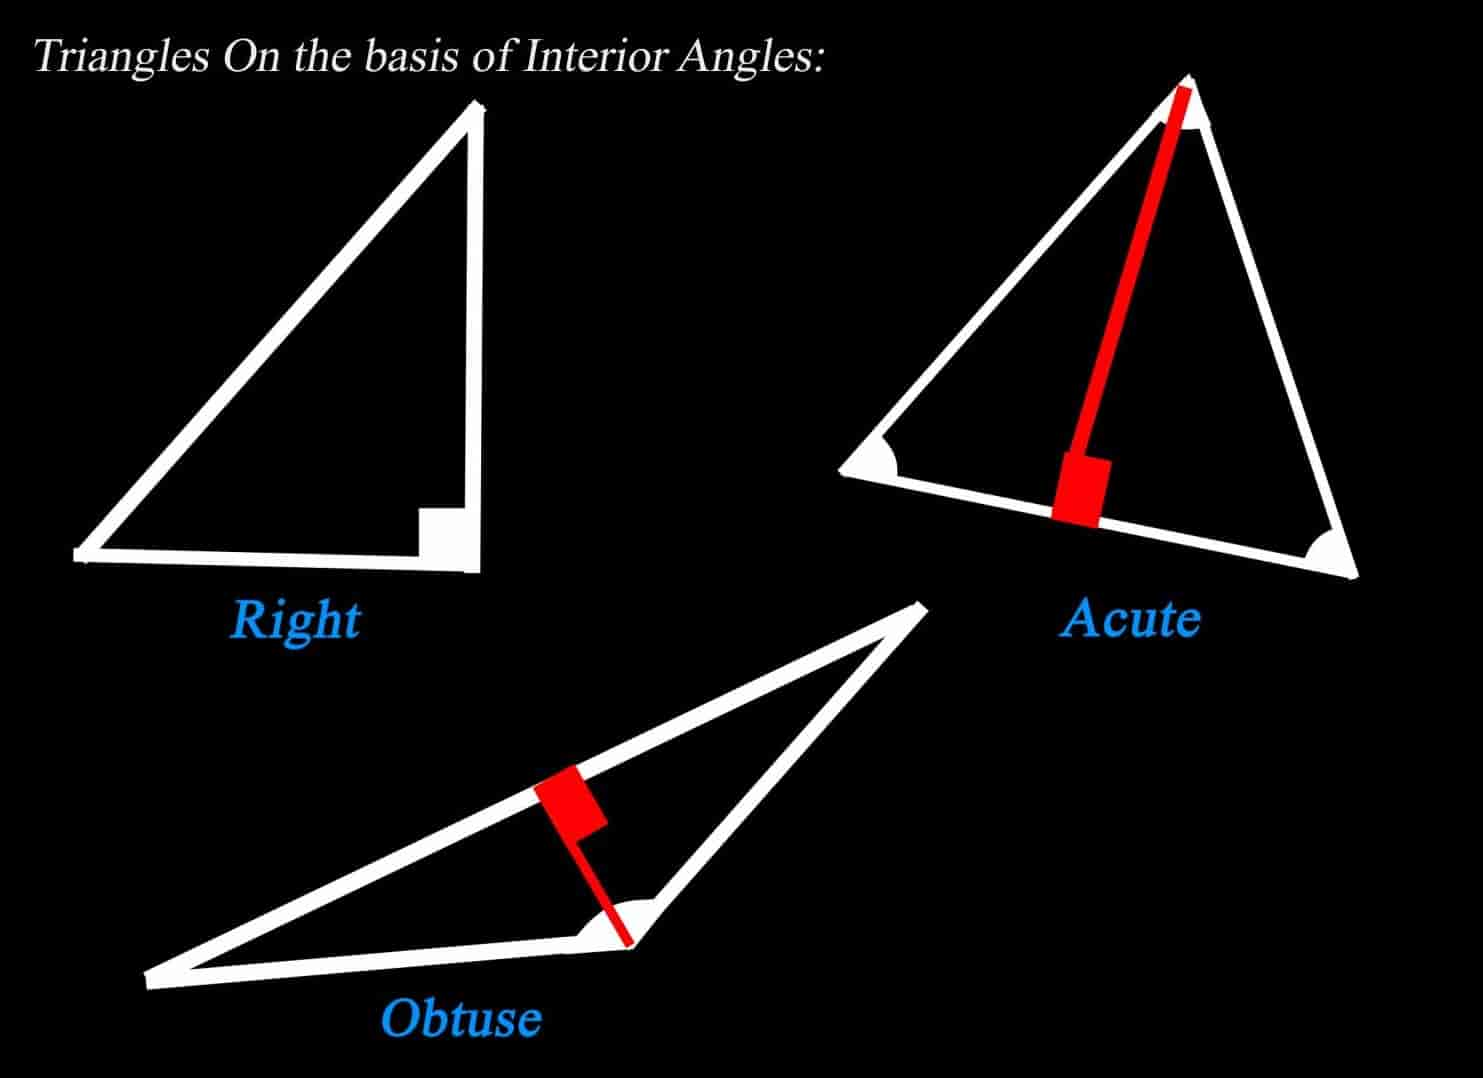 traingles on the basis of interior angles